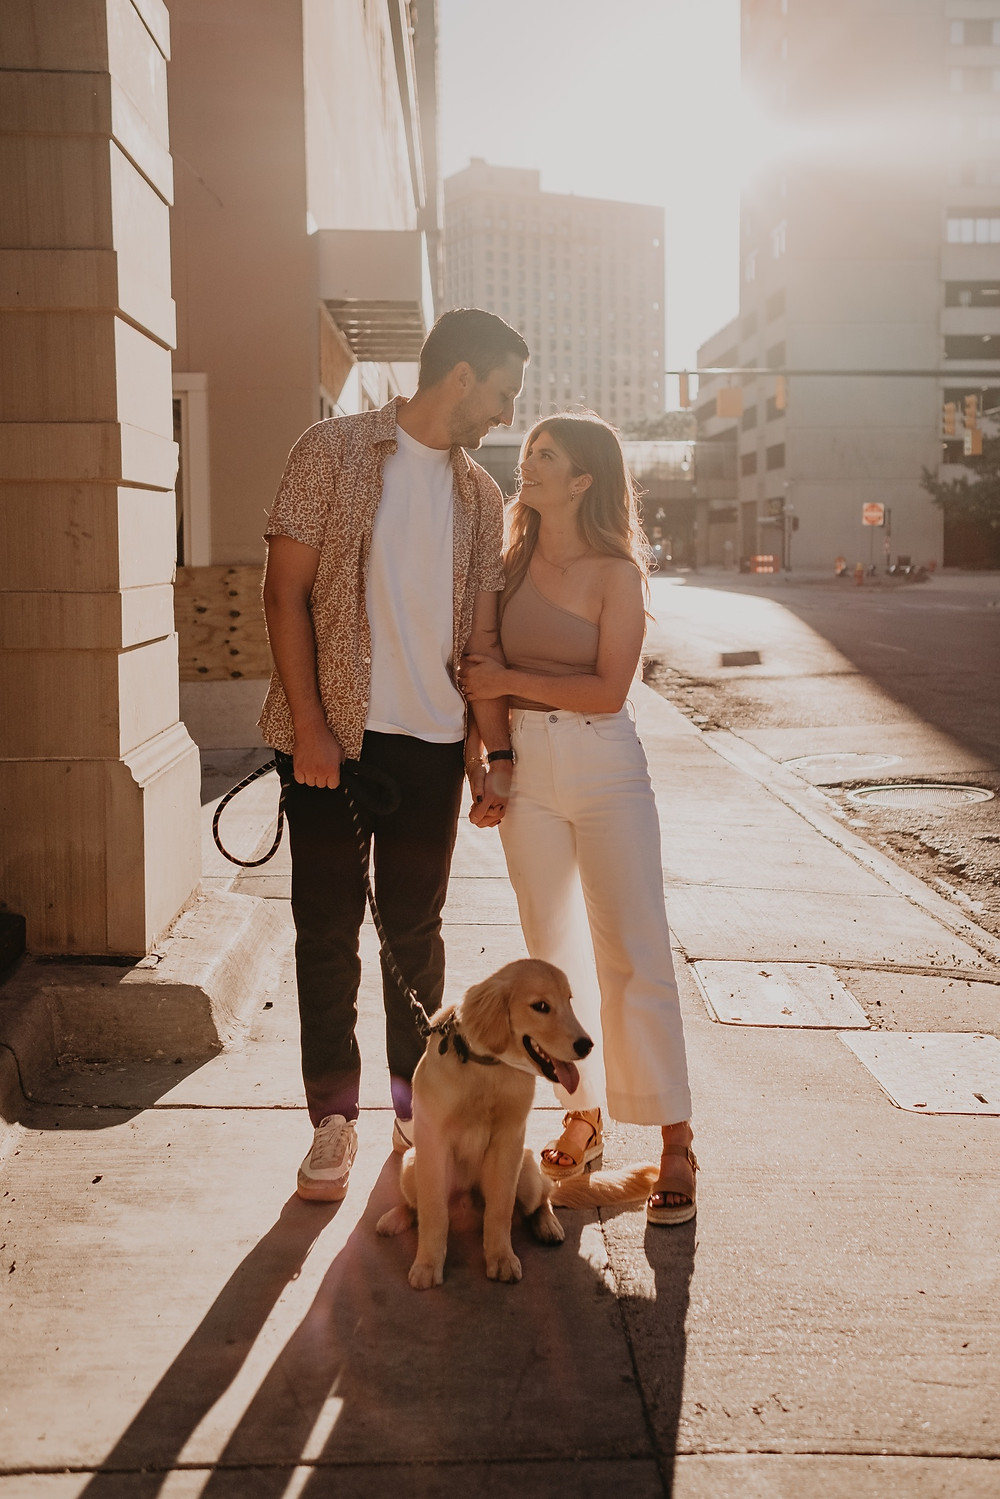 Sunset engagement session in Downtown Detroit with dog. Photographed by Nicole Leanne Photography.